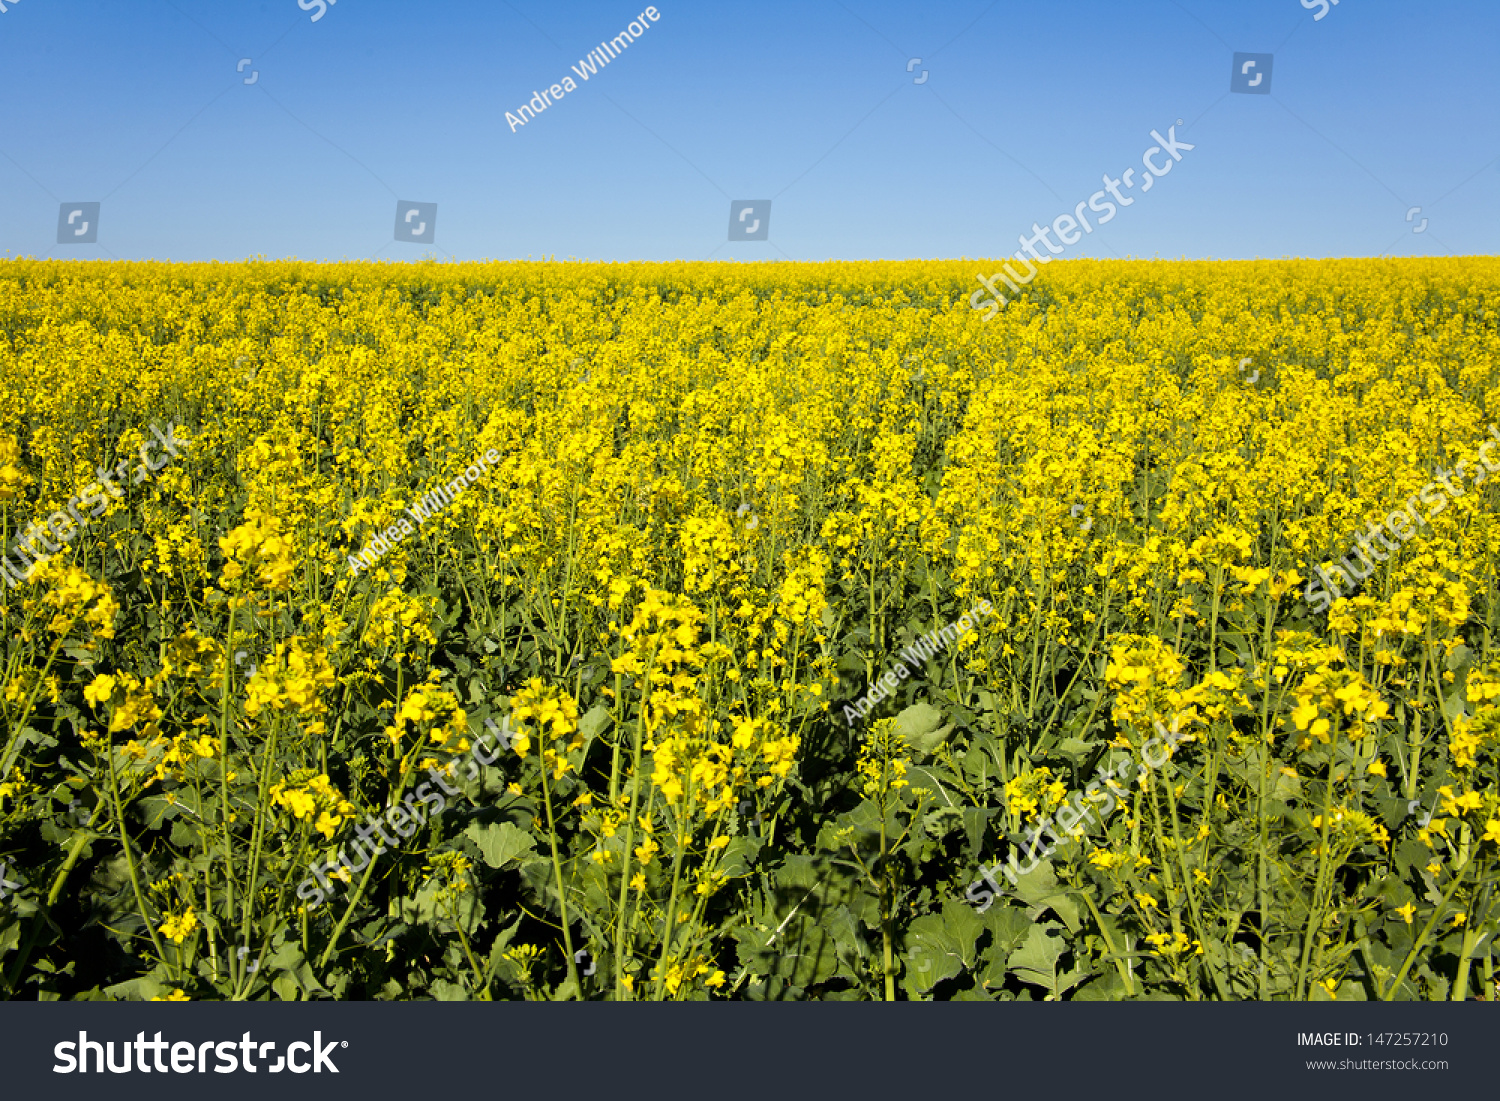 canola flower garden - photo #22